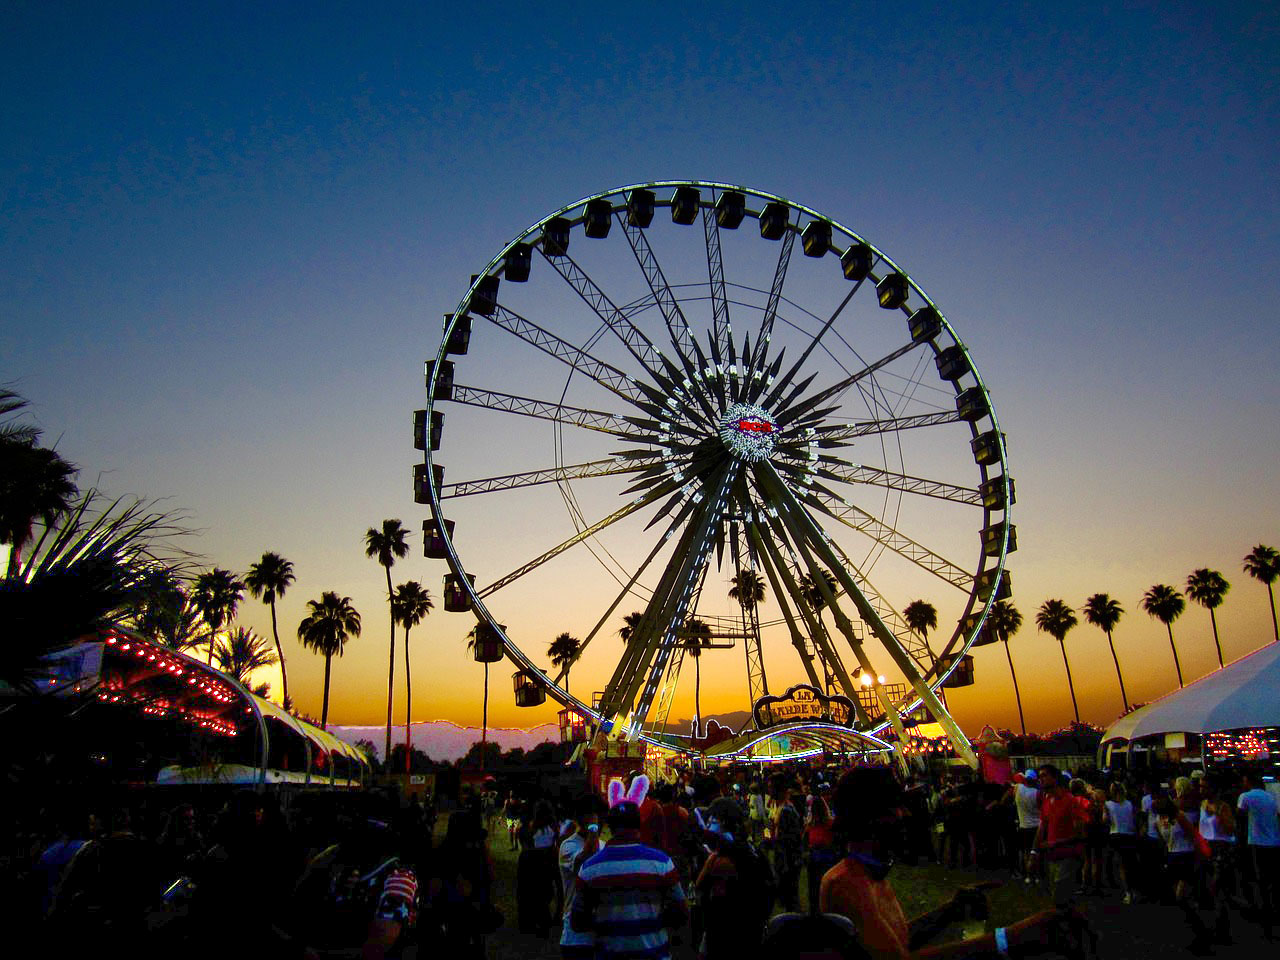 Palm Springs, California| Why Its Top On My West Coast Bucket List?